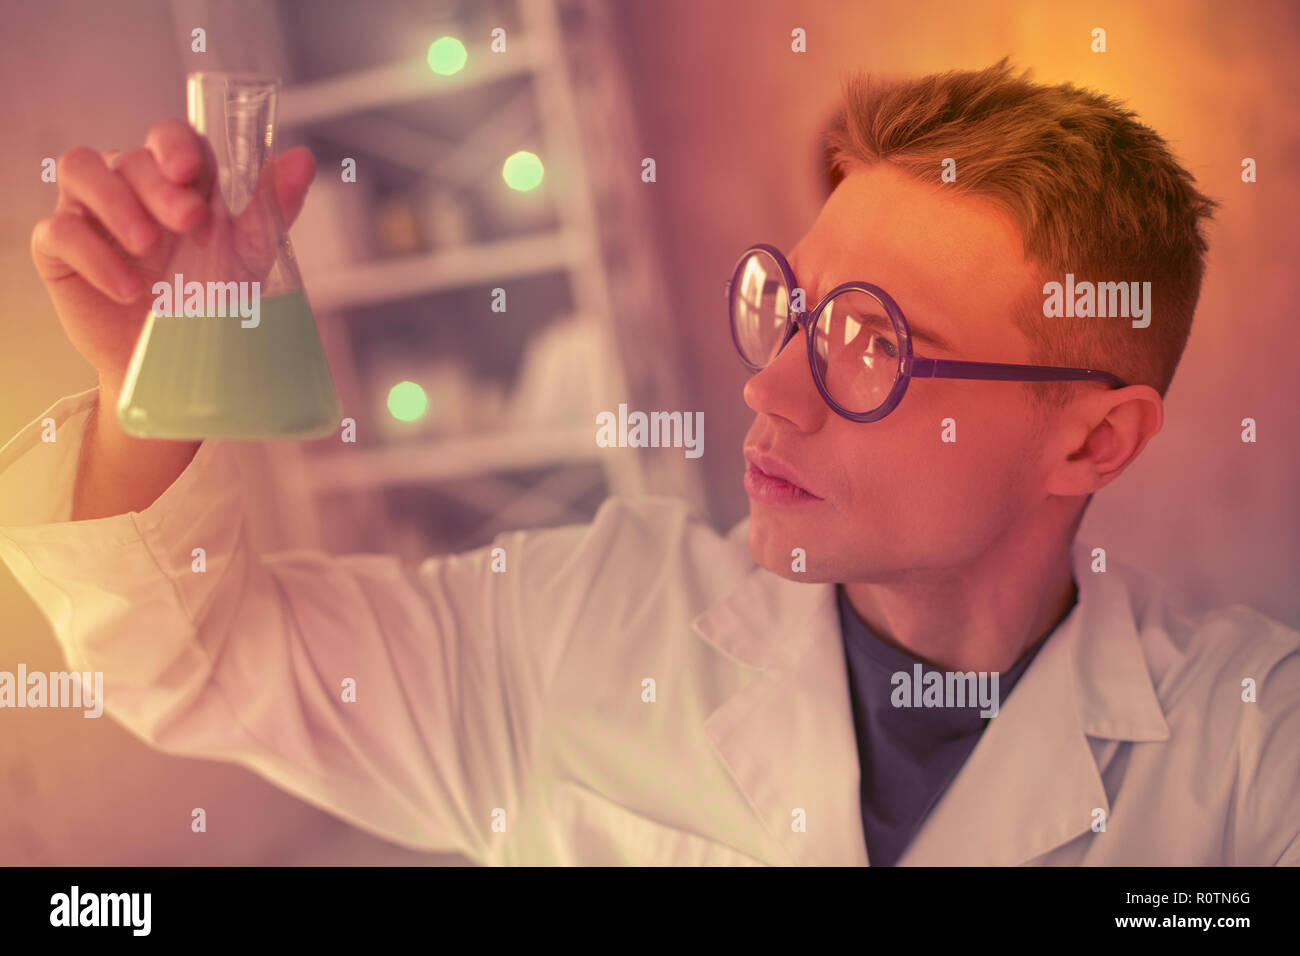 Short haired man puzzled looking on the test tube - Stock Image